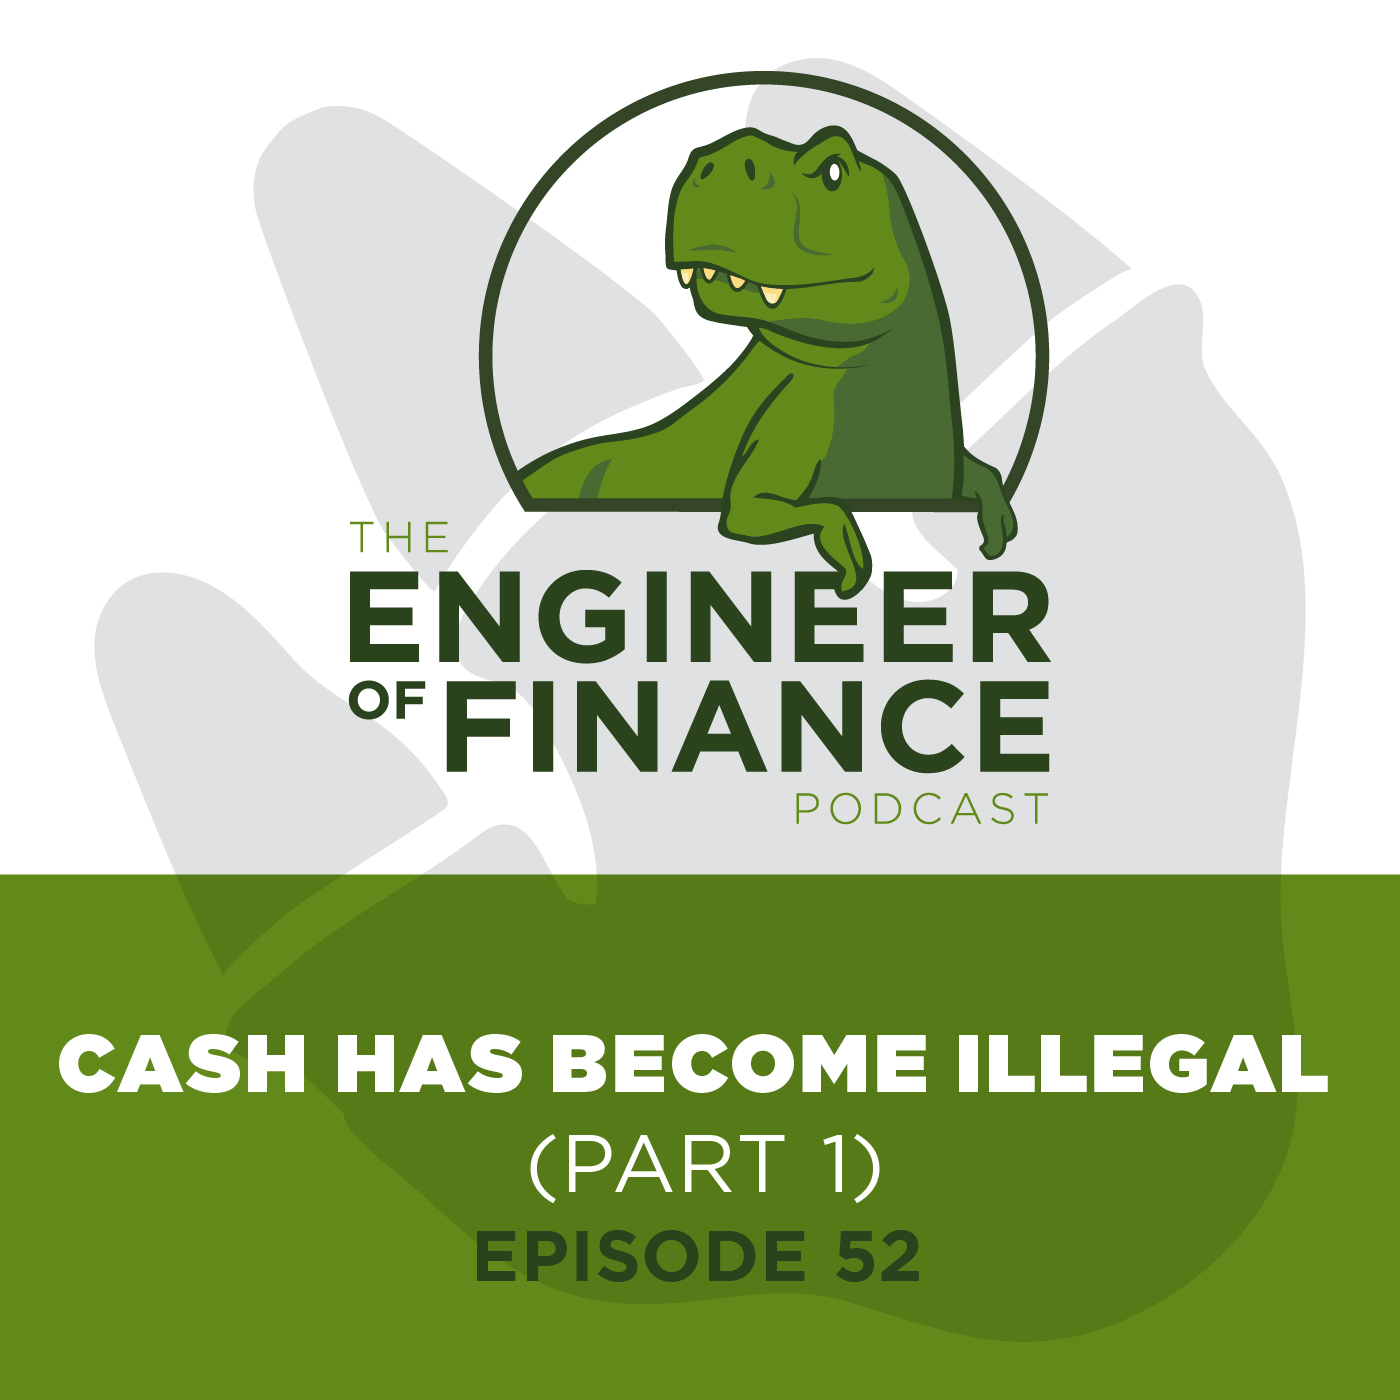 Cash Has Become Illegal (Part 1)  – Episode 52